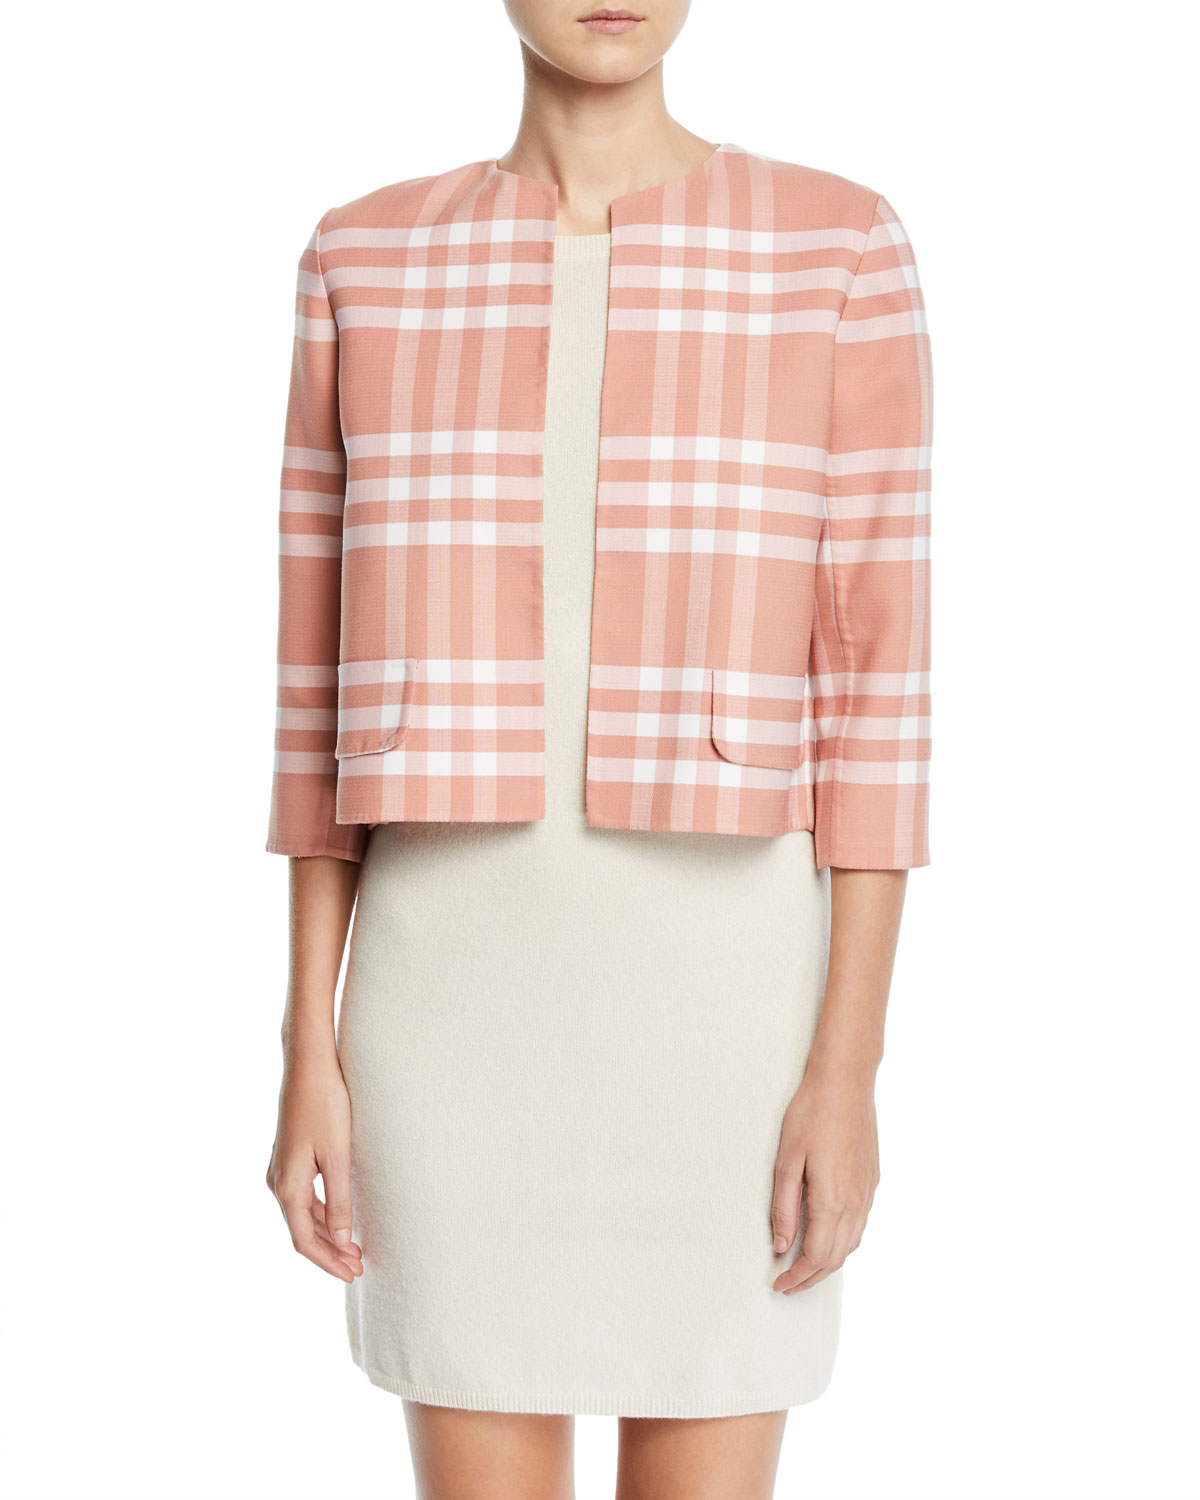 Oscar De La Renta Jackets 3/4-SLEEVE PLAID HIGH-LOW JACKET